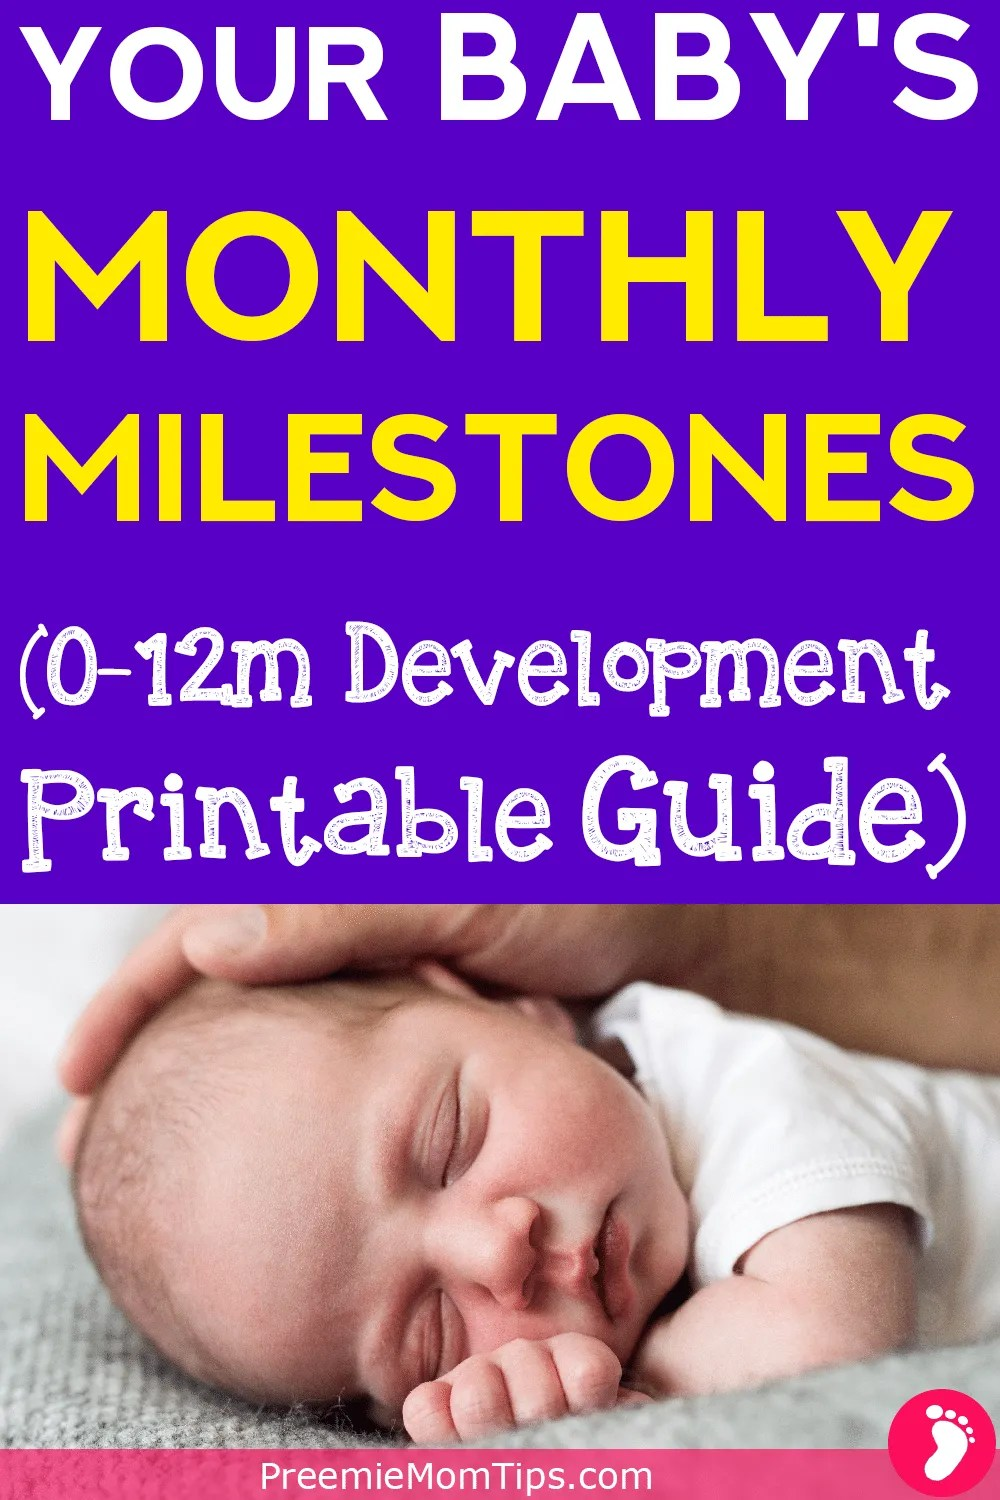 Track your baby's development monthly. A complete month by month milestone guide, with a Printable!